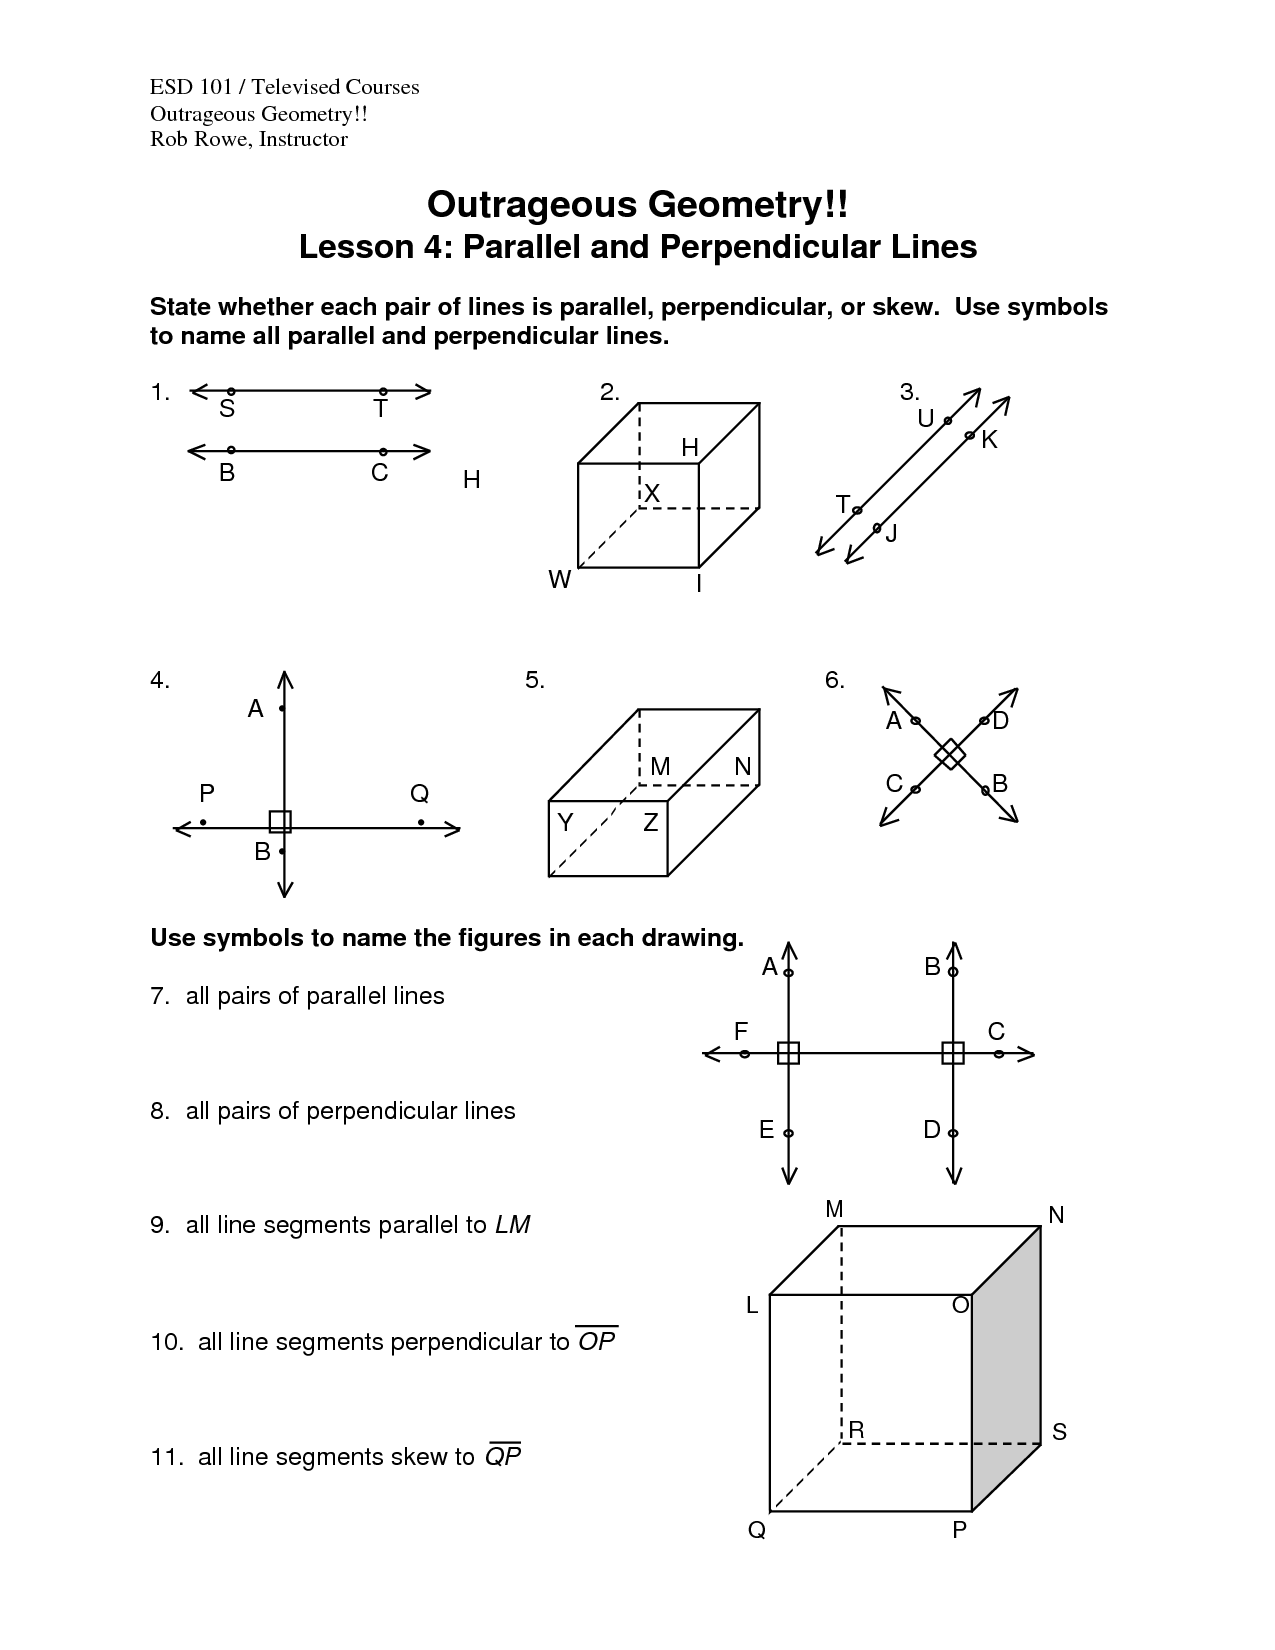 Classifying Equations Of Parallel And Perpendicular Lines